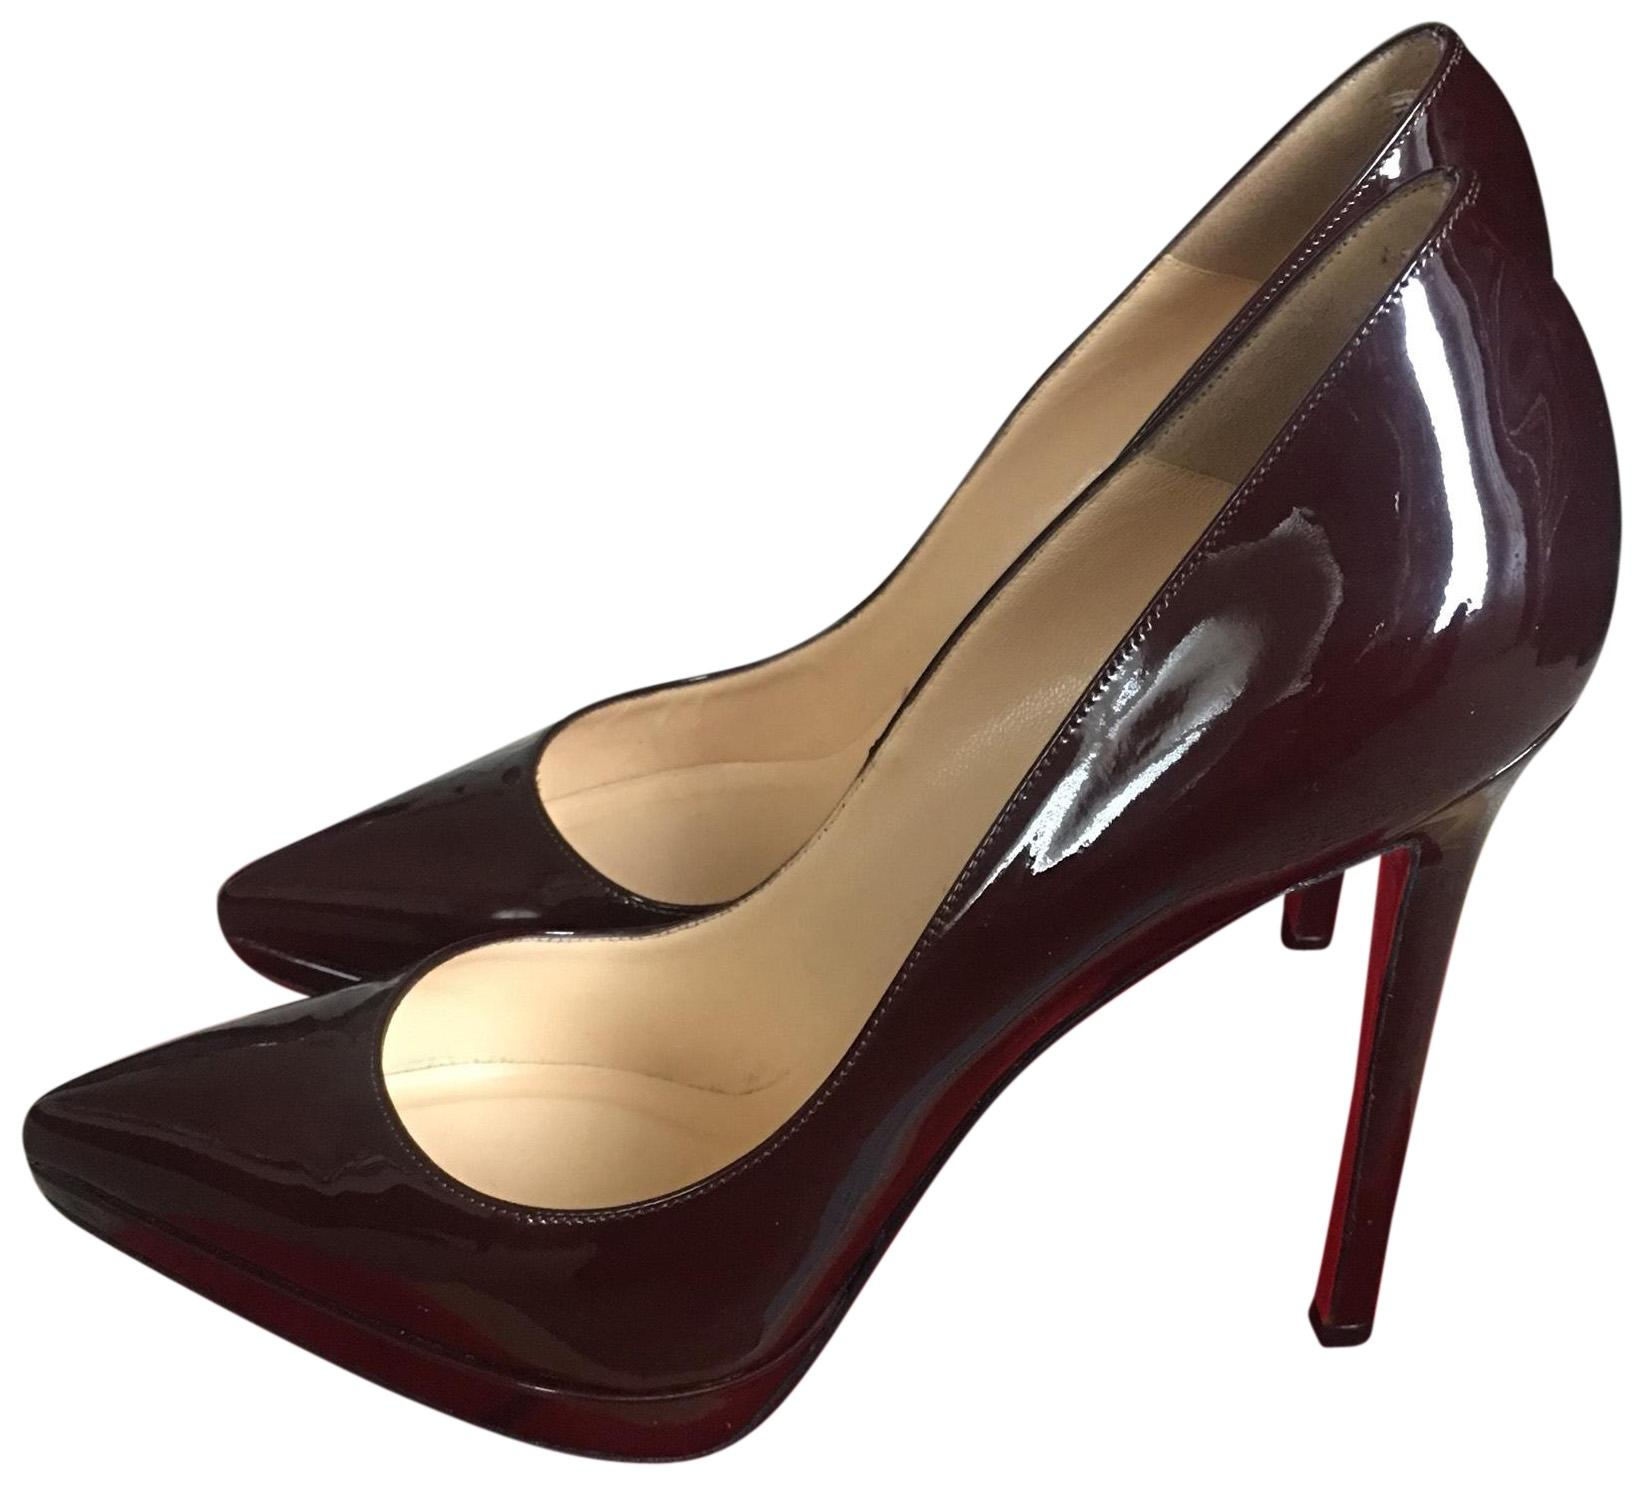 Christian Louboutin Plum Pigalle Plato 140 Pumps Size EU 38 (Approx. US 8) Regular (M, B)